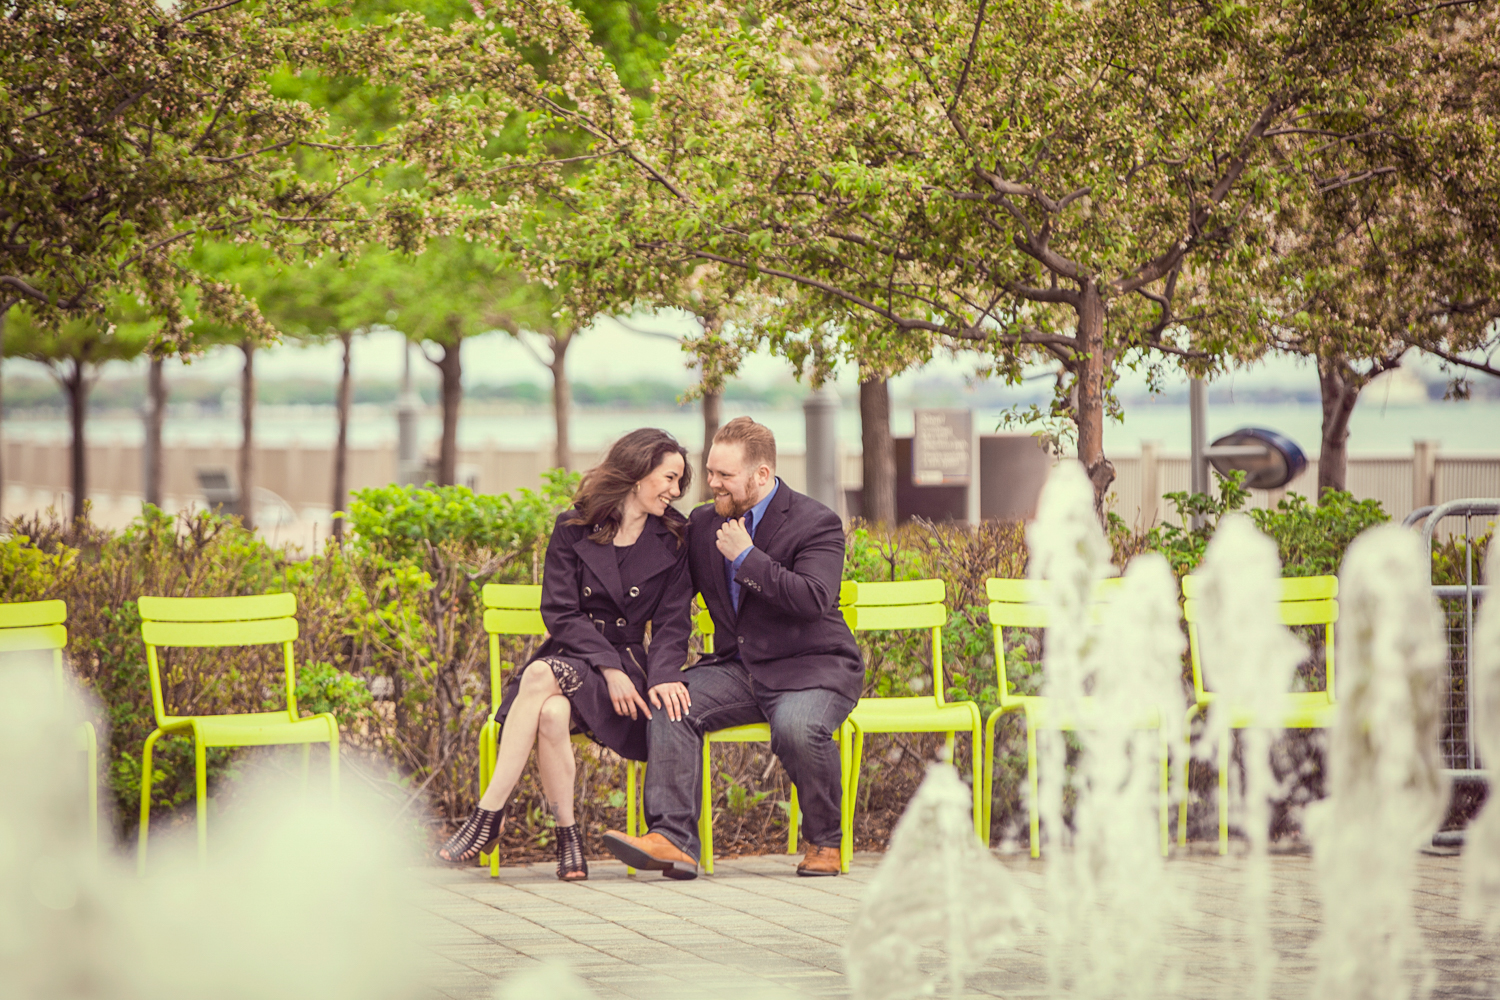 Portrait-Engagement-man-and-woman-in-cafe-on-detroit-riverwalk-with-fountain-173.jpg